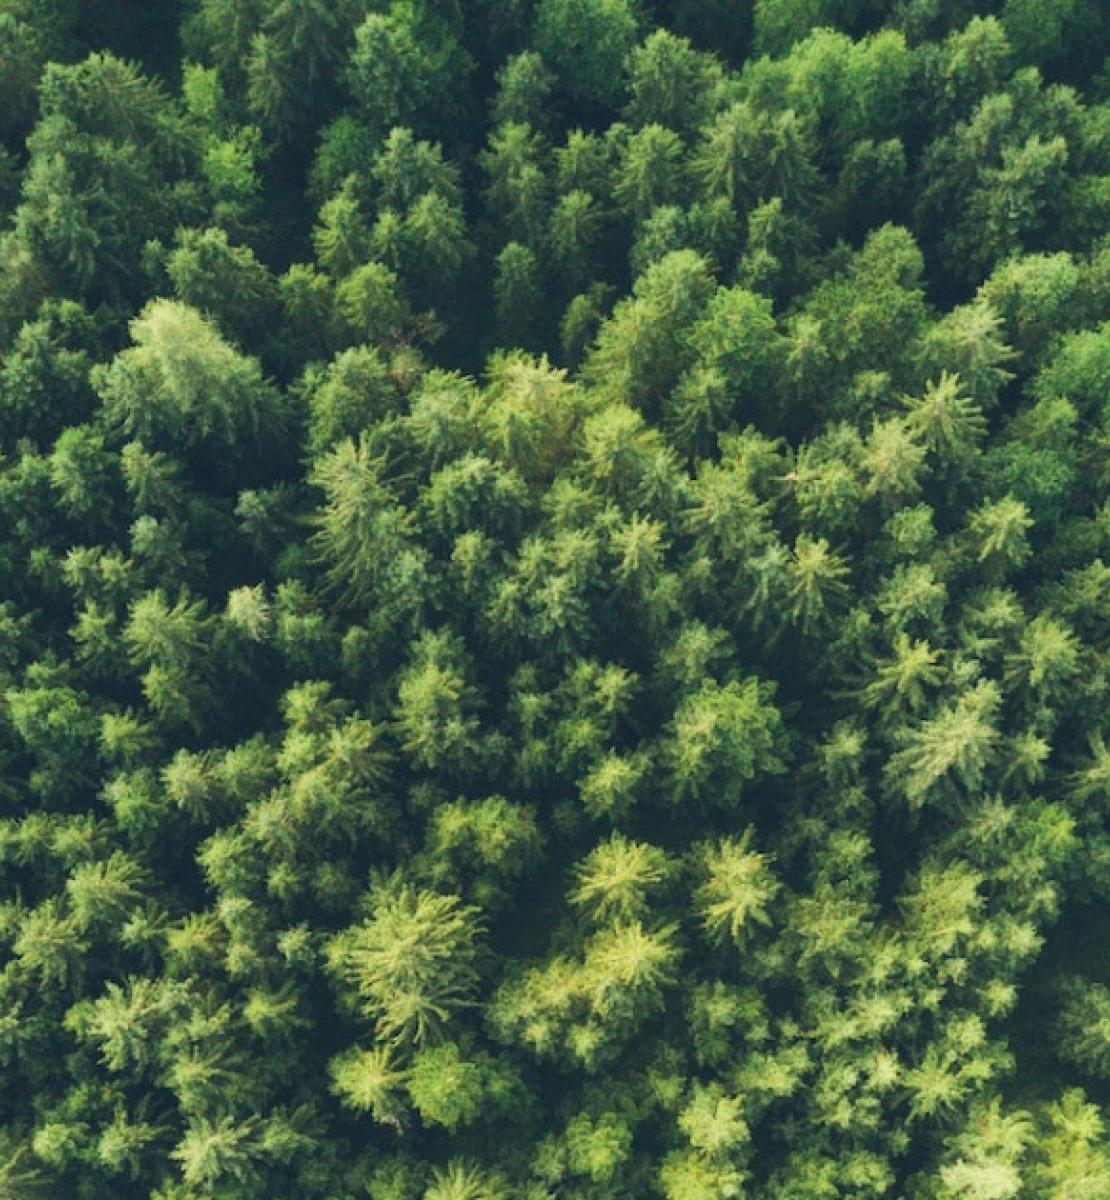 Aerial view of a lush green forest.